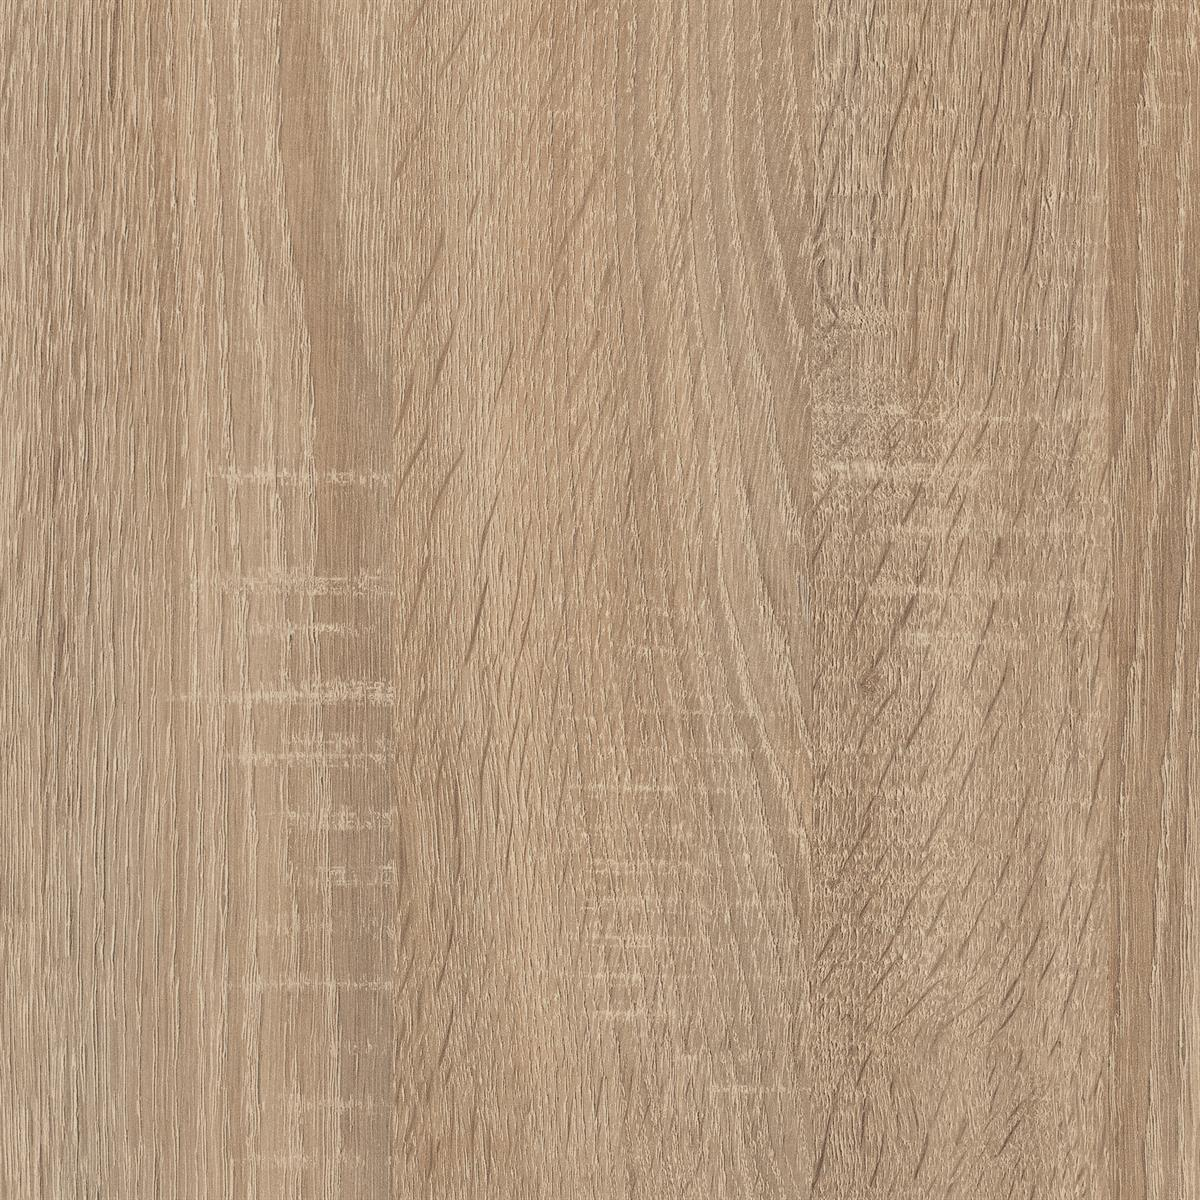 Grey Bardolino Oak H1146